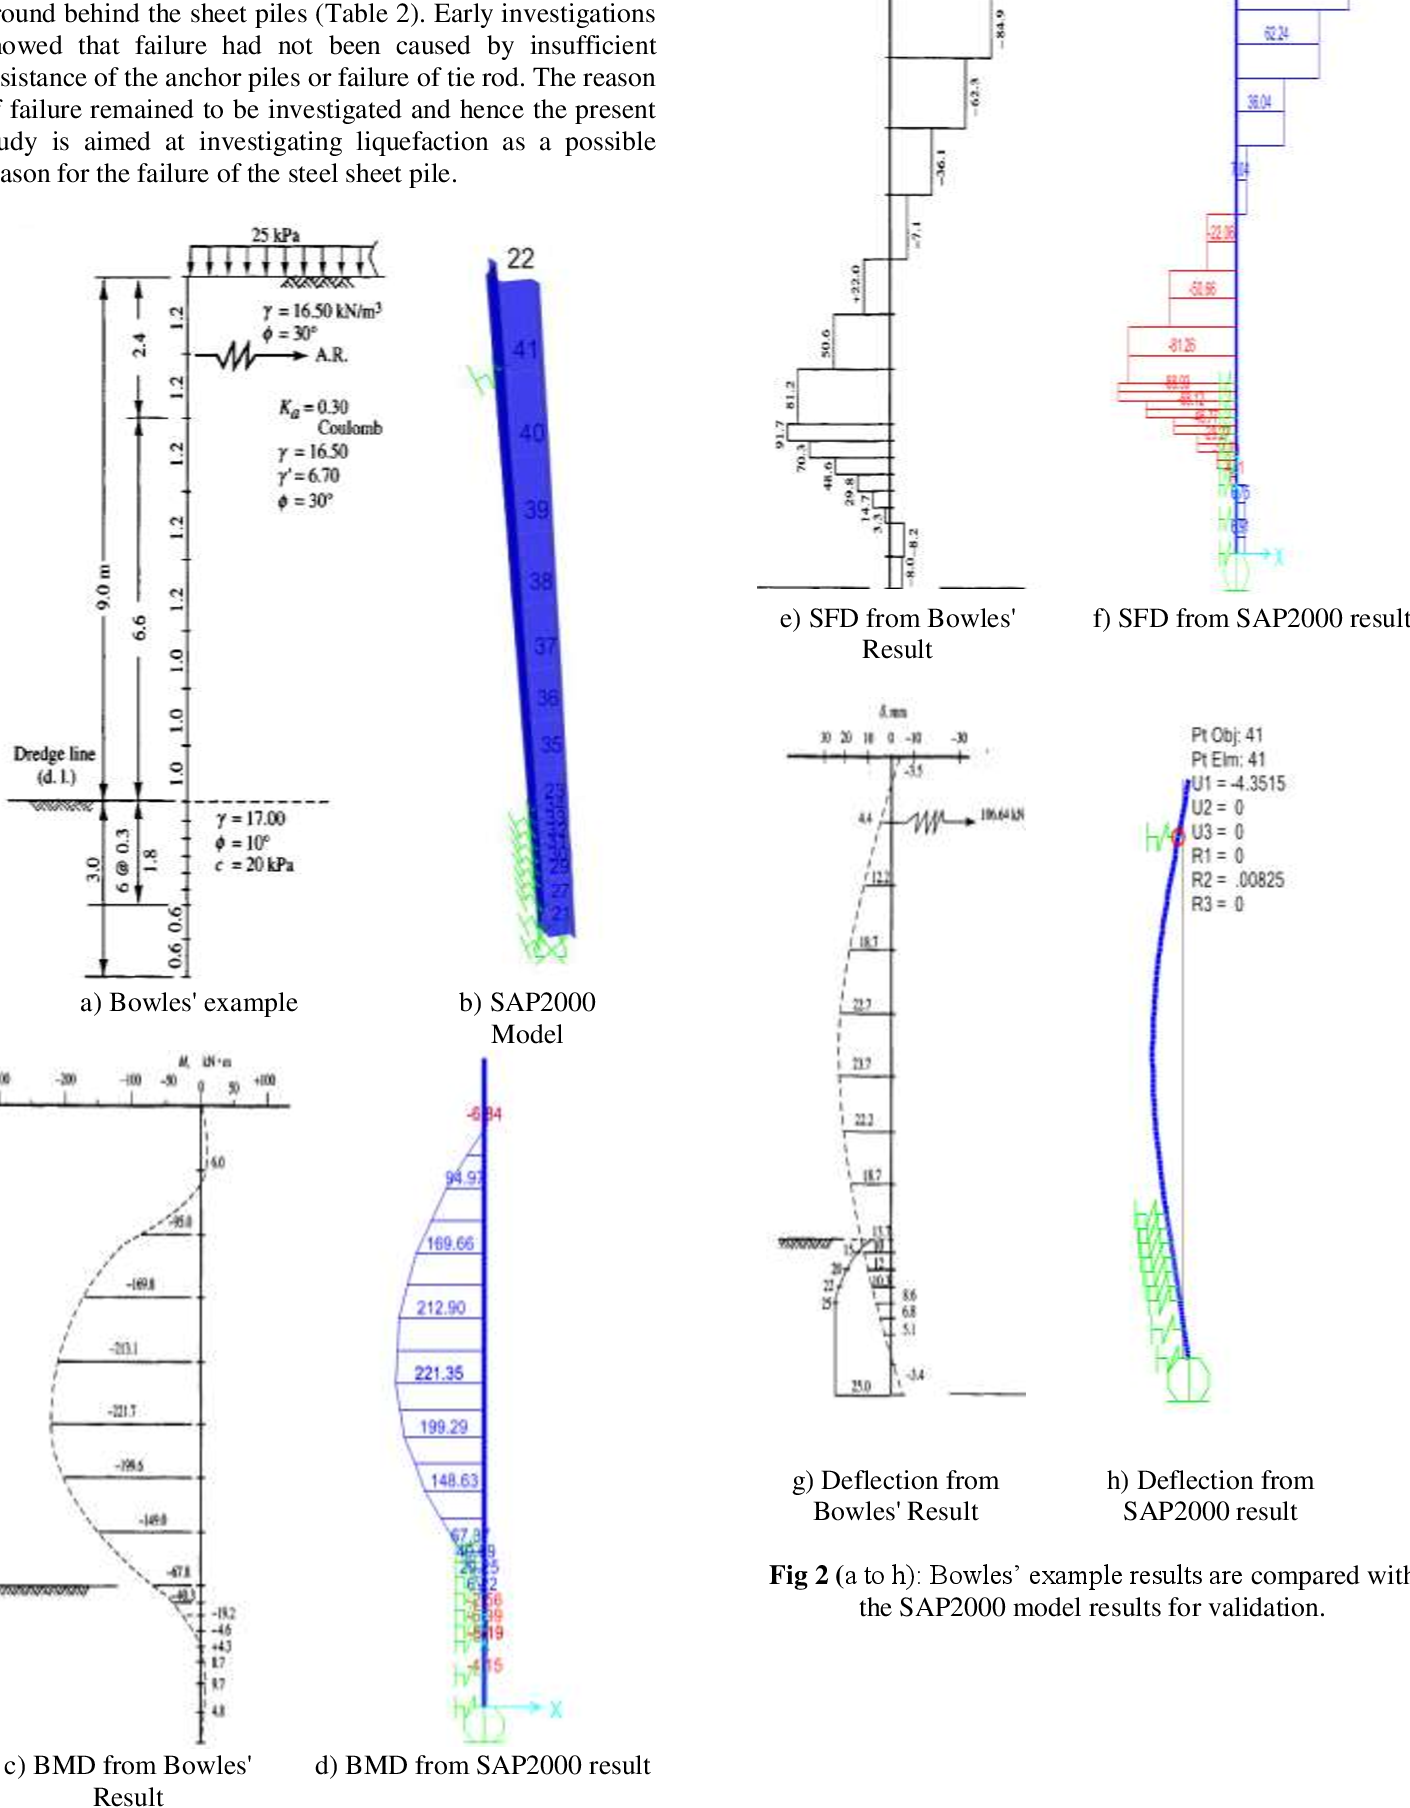 PDF] FEM ANALYSIS OF ANCHORED SHEET PILE QUAY WALL: A CASE